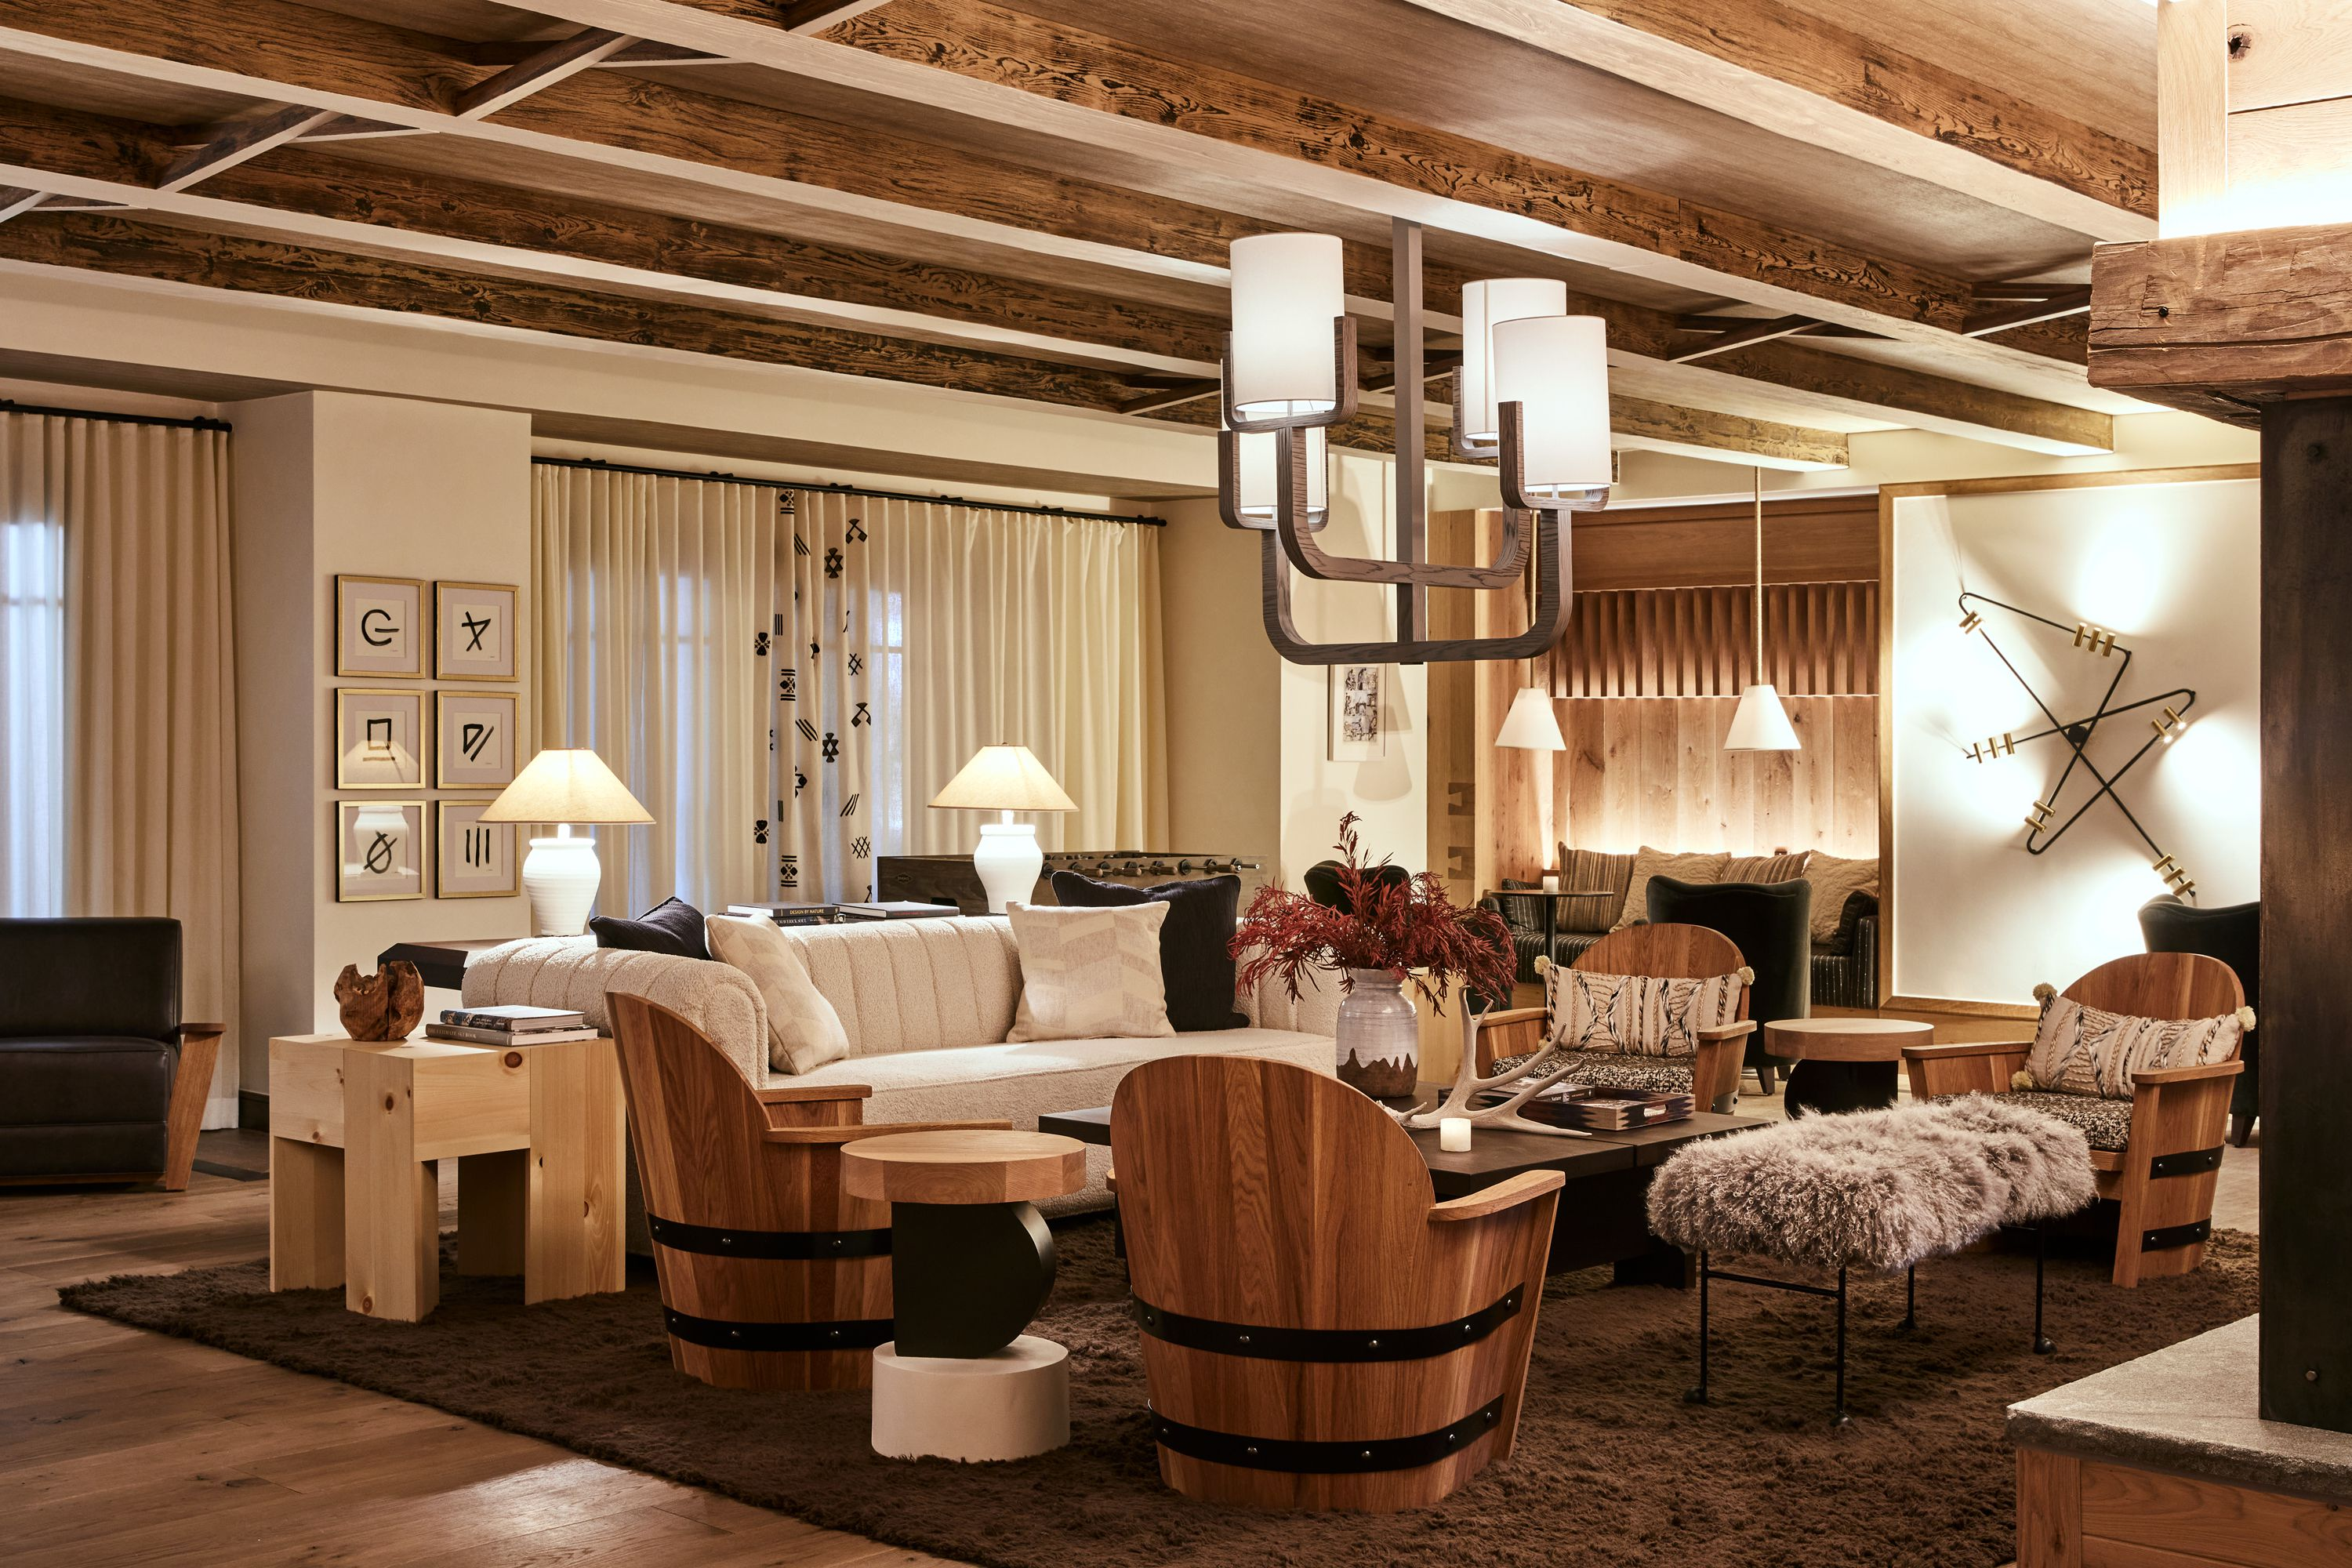 Ski Telluride This Winter and Stay at the Renovated Madeline Hotel